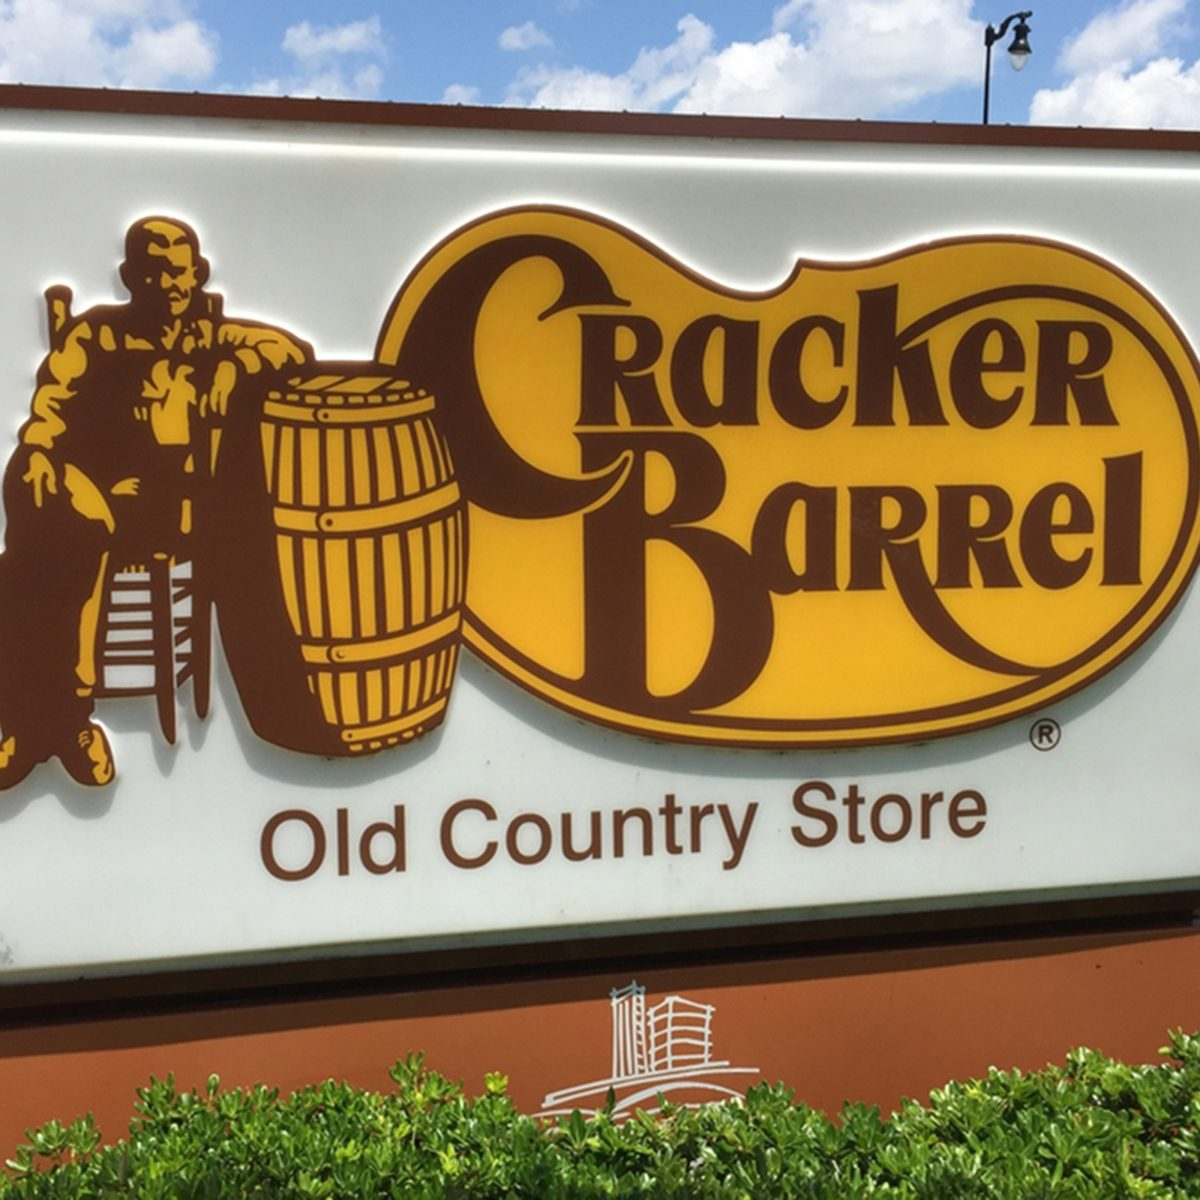 10 Treats You'll Want to Order From Cracker Barrel's Online